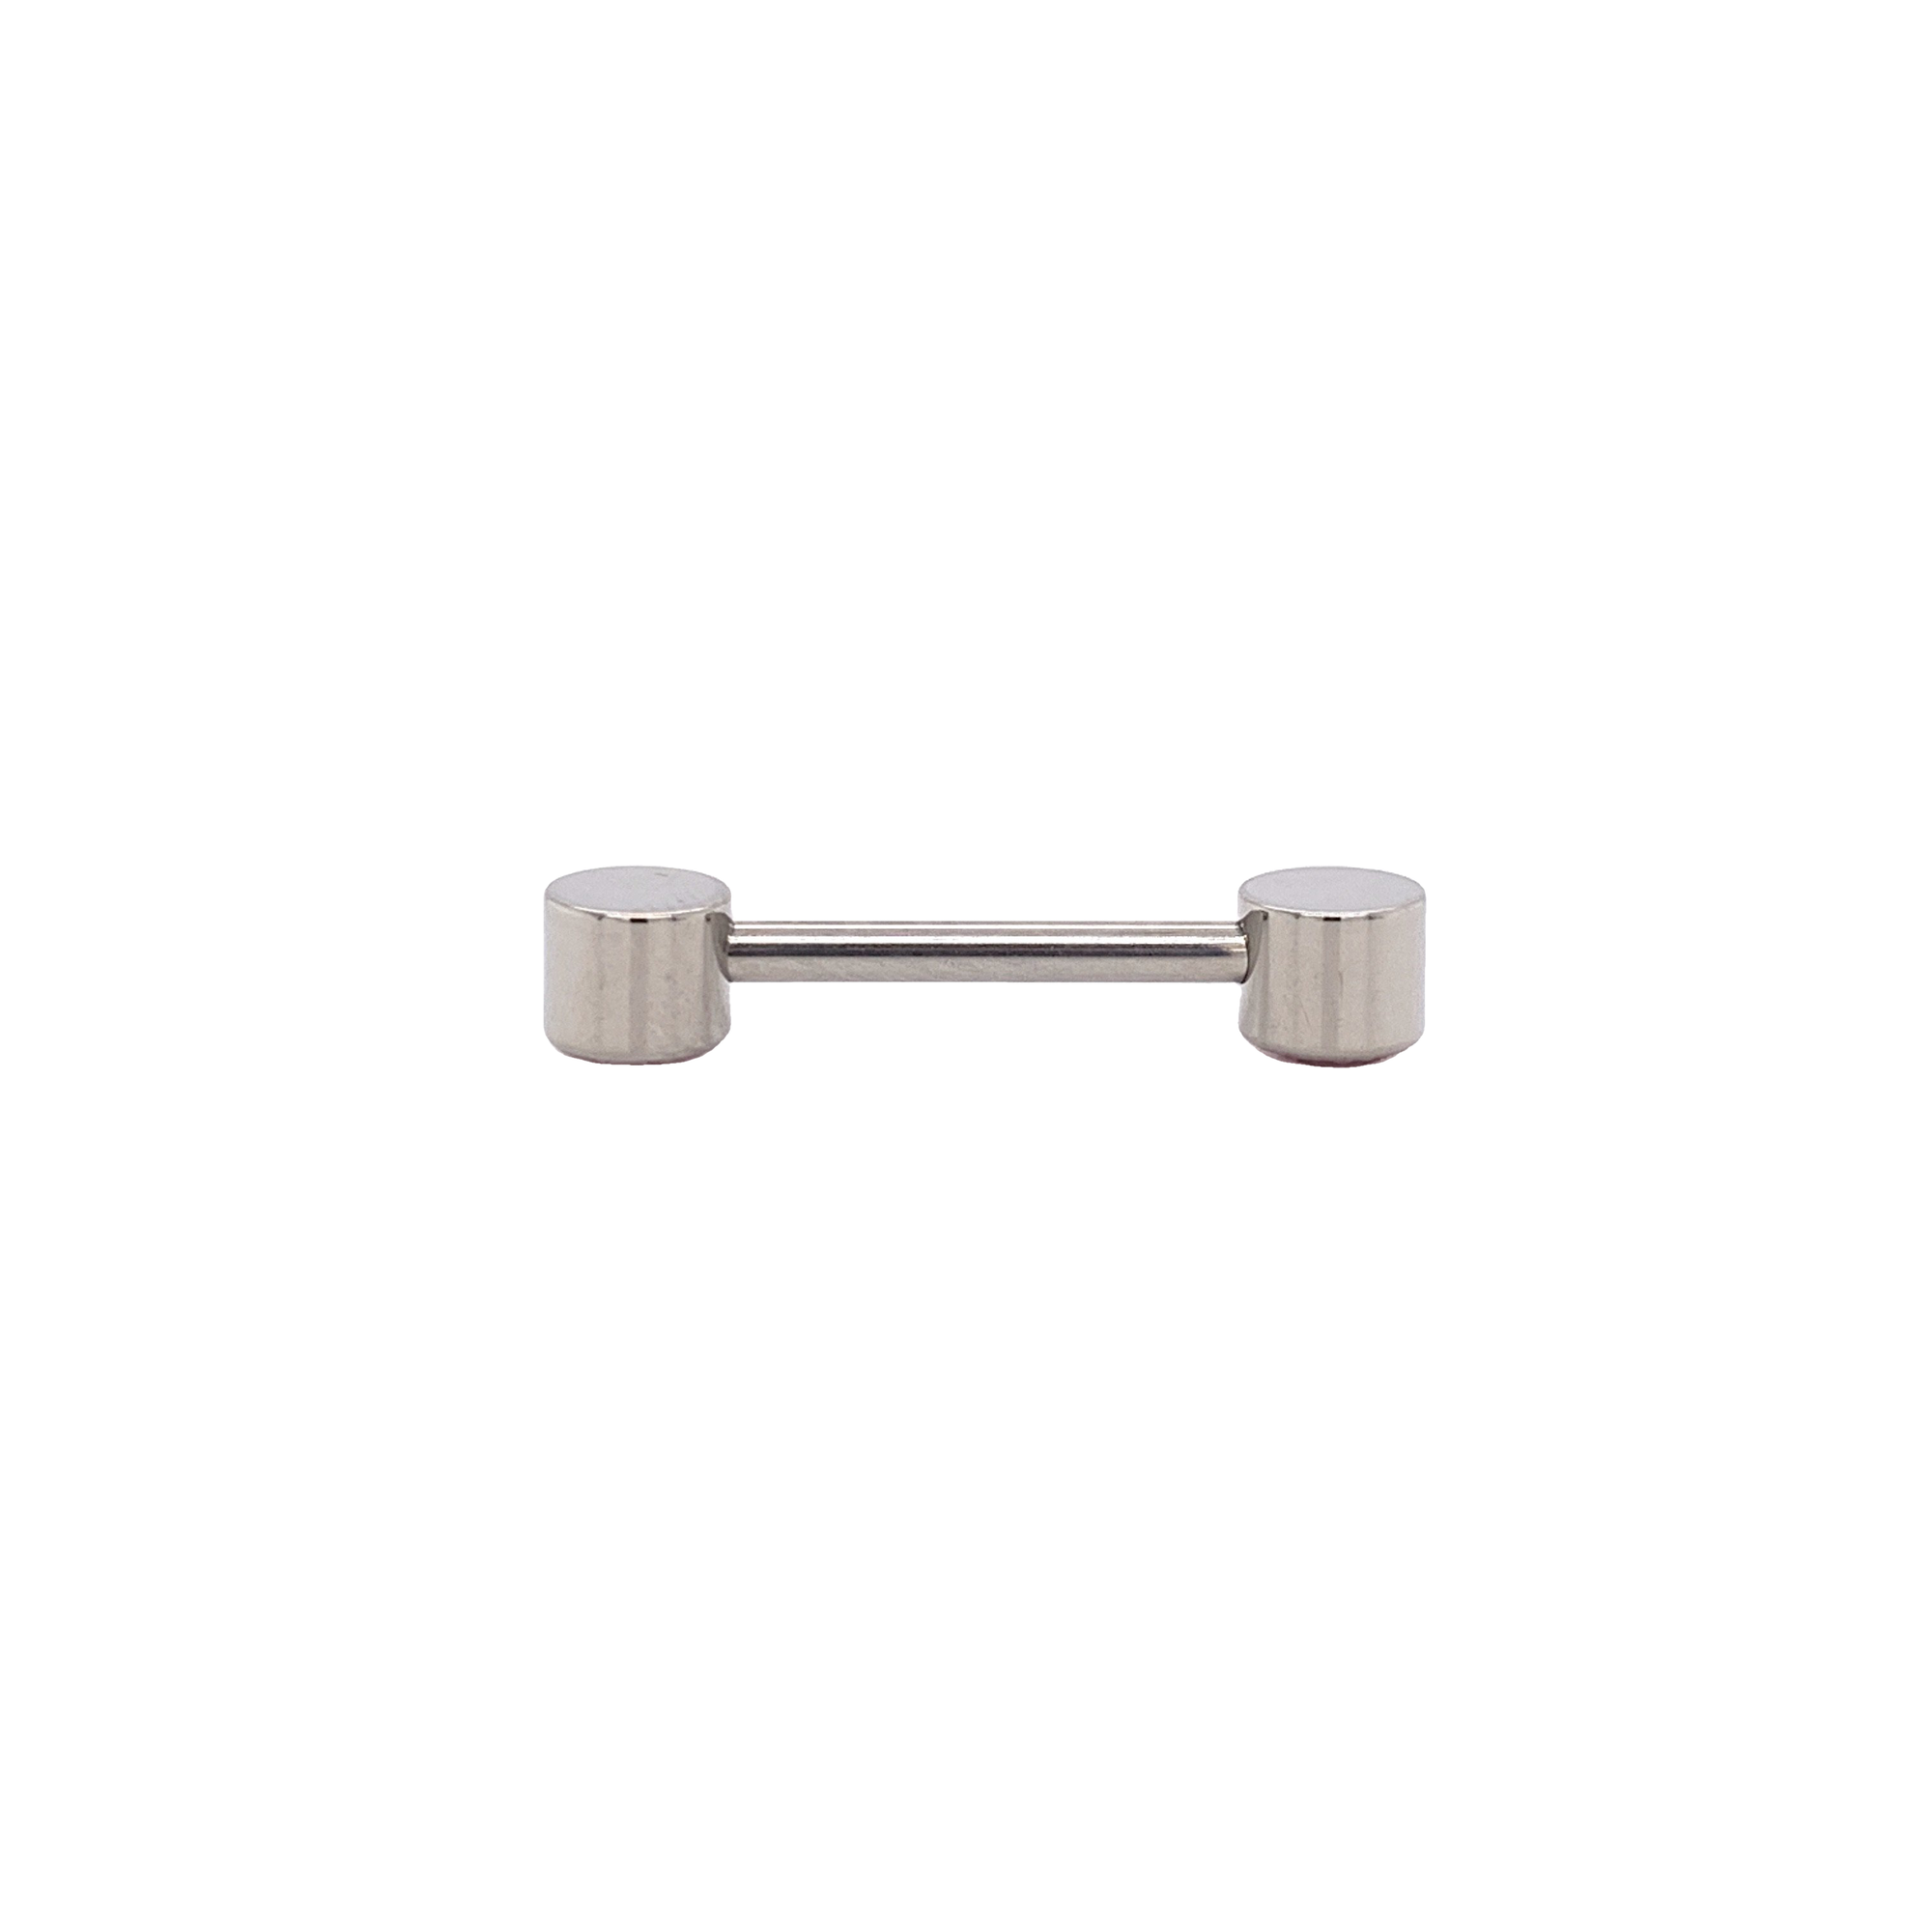 Forward Facing Cubic Zircon Straight Barbell - Isha Body Jewellery